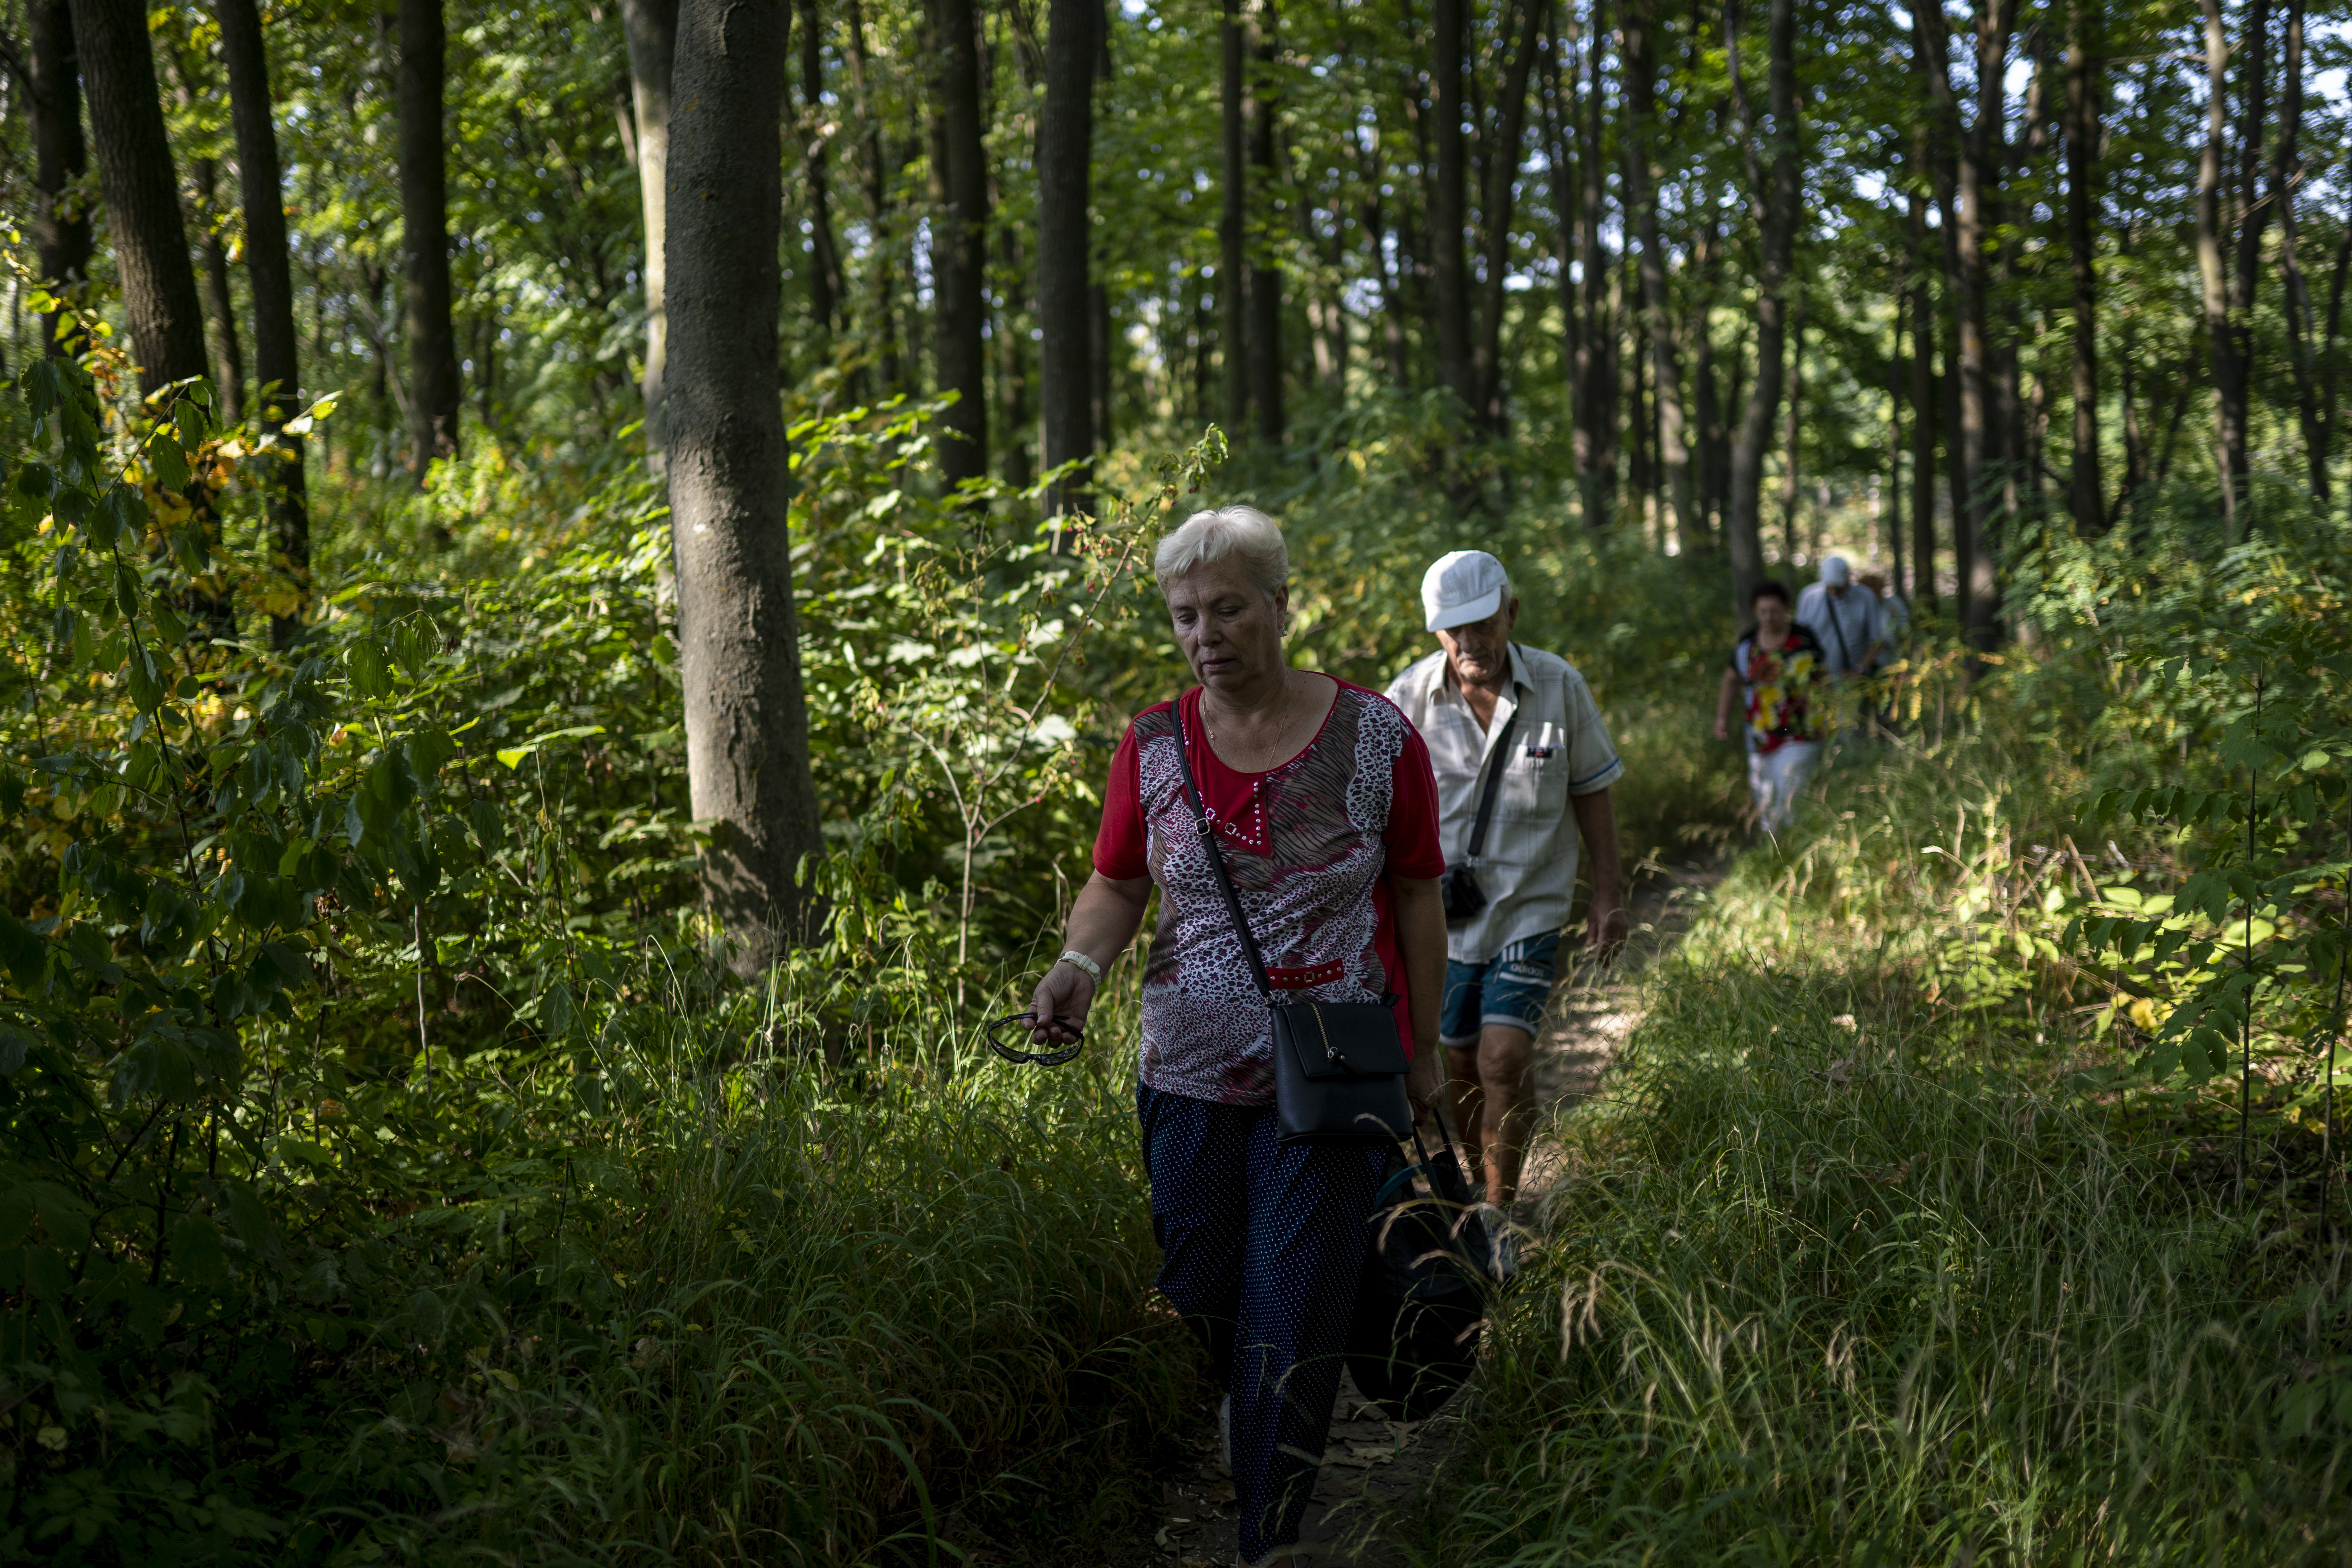 Viktor and Lubov must complete the journey to their dacha on foot (AtlasNetwork.org Photo/Bernat Parera).